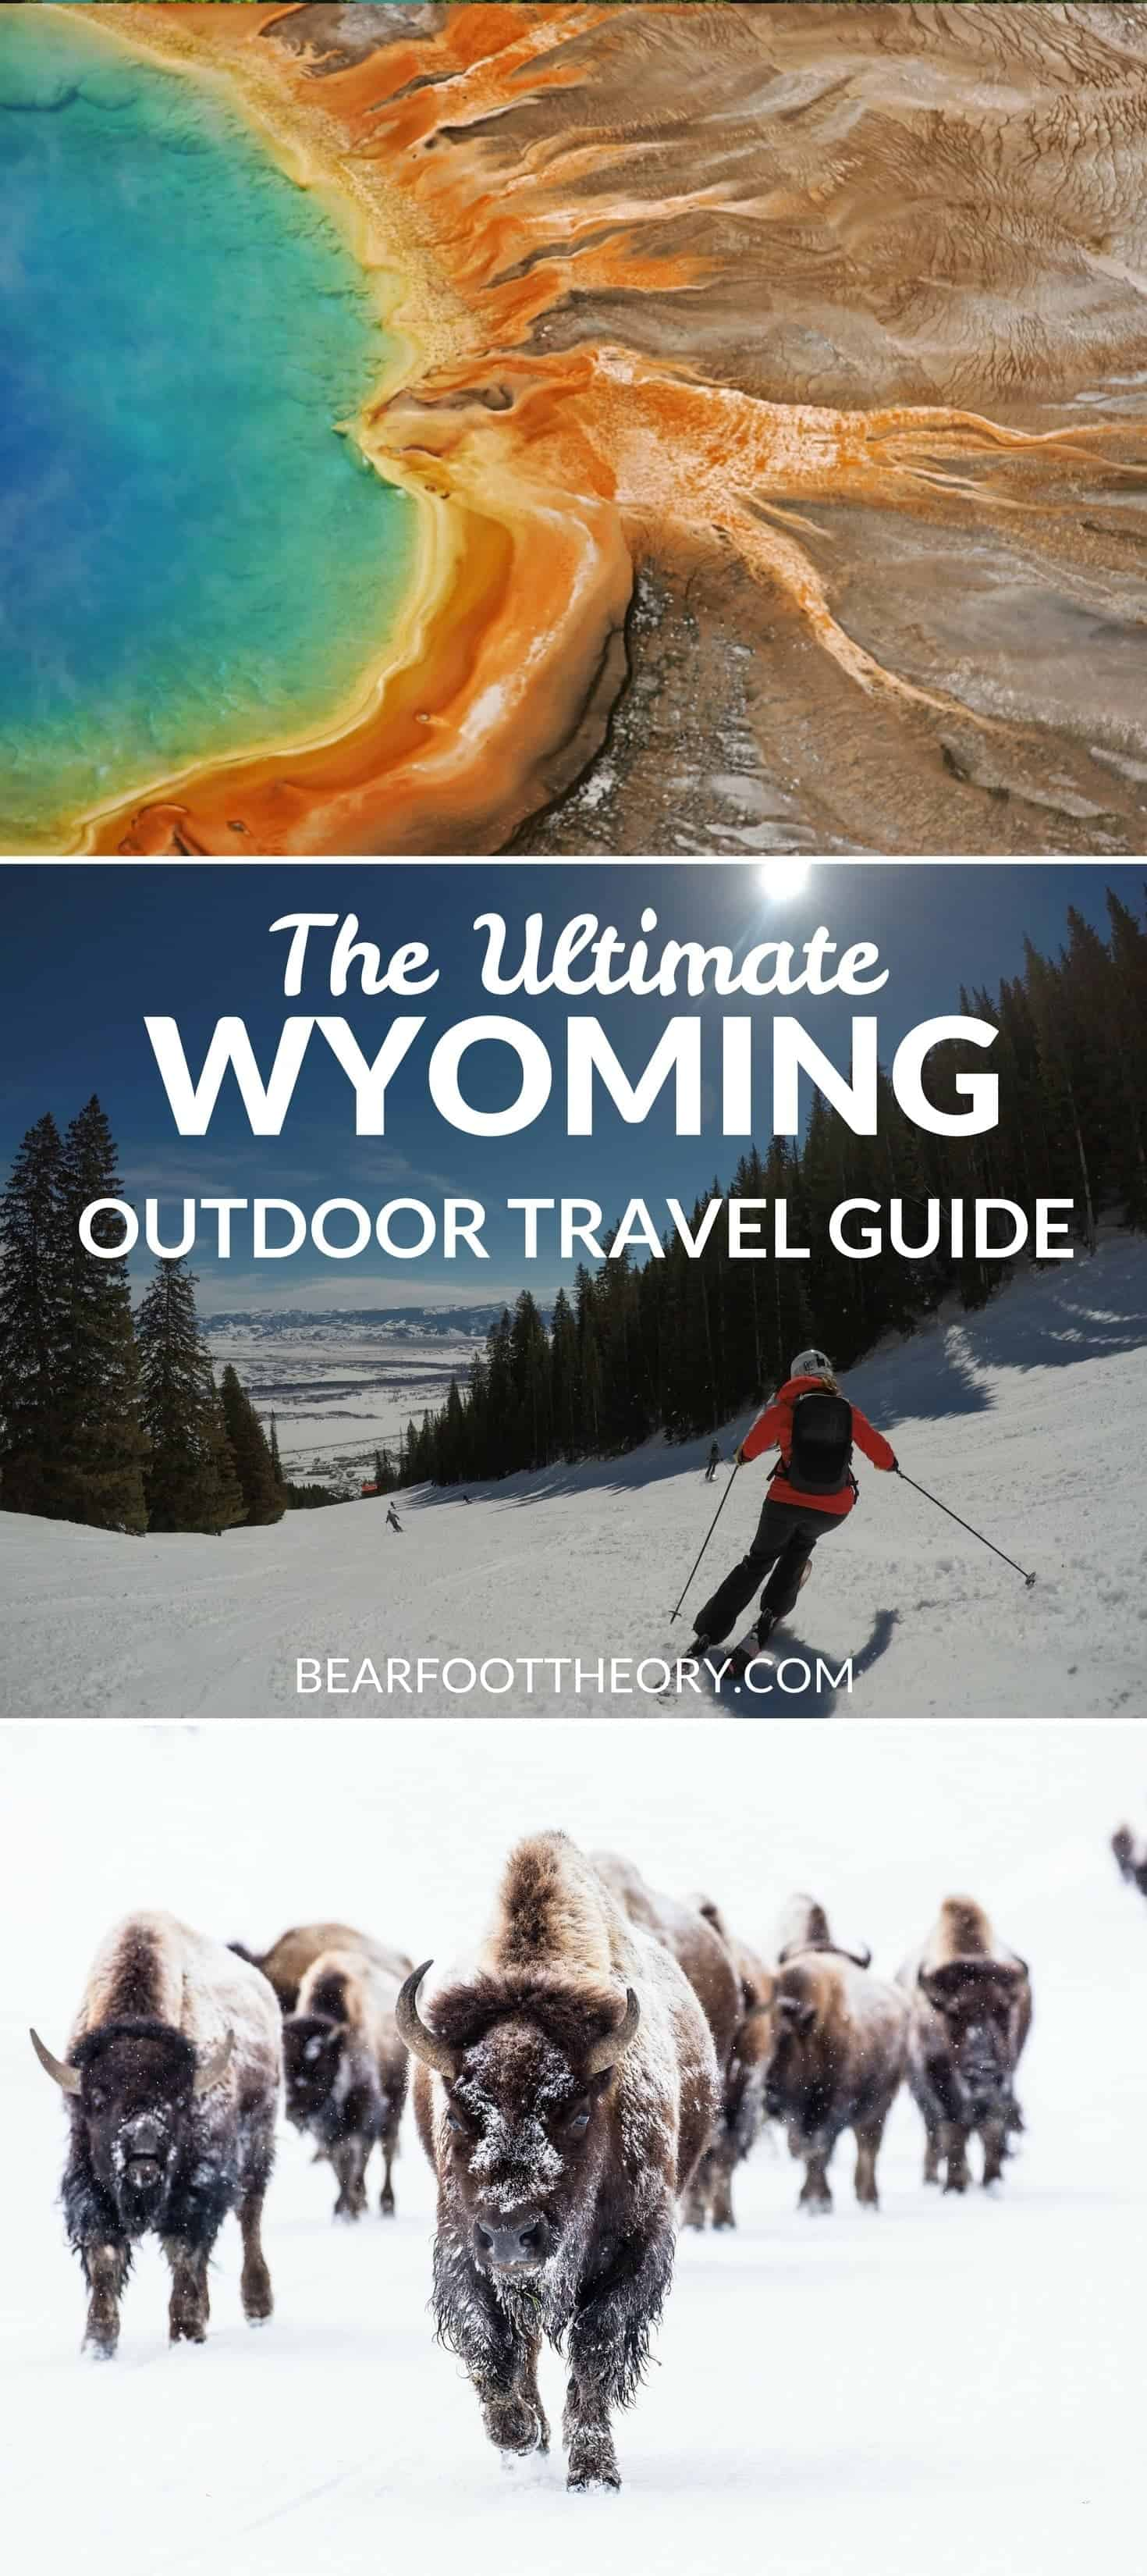 Plan an adventurous trip to Wyoming with our outdoor travel guide featuring the best outdoor activities, national parks & most popular Wyoming blog posts.